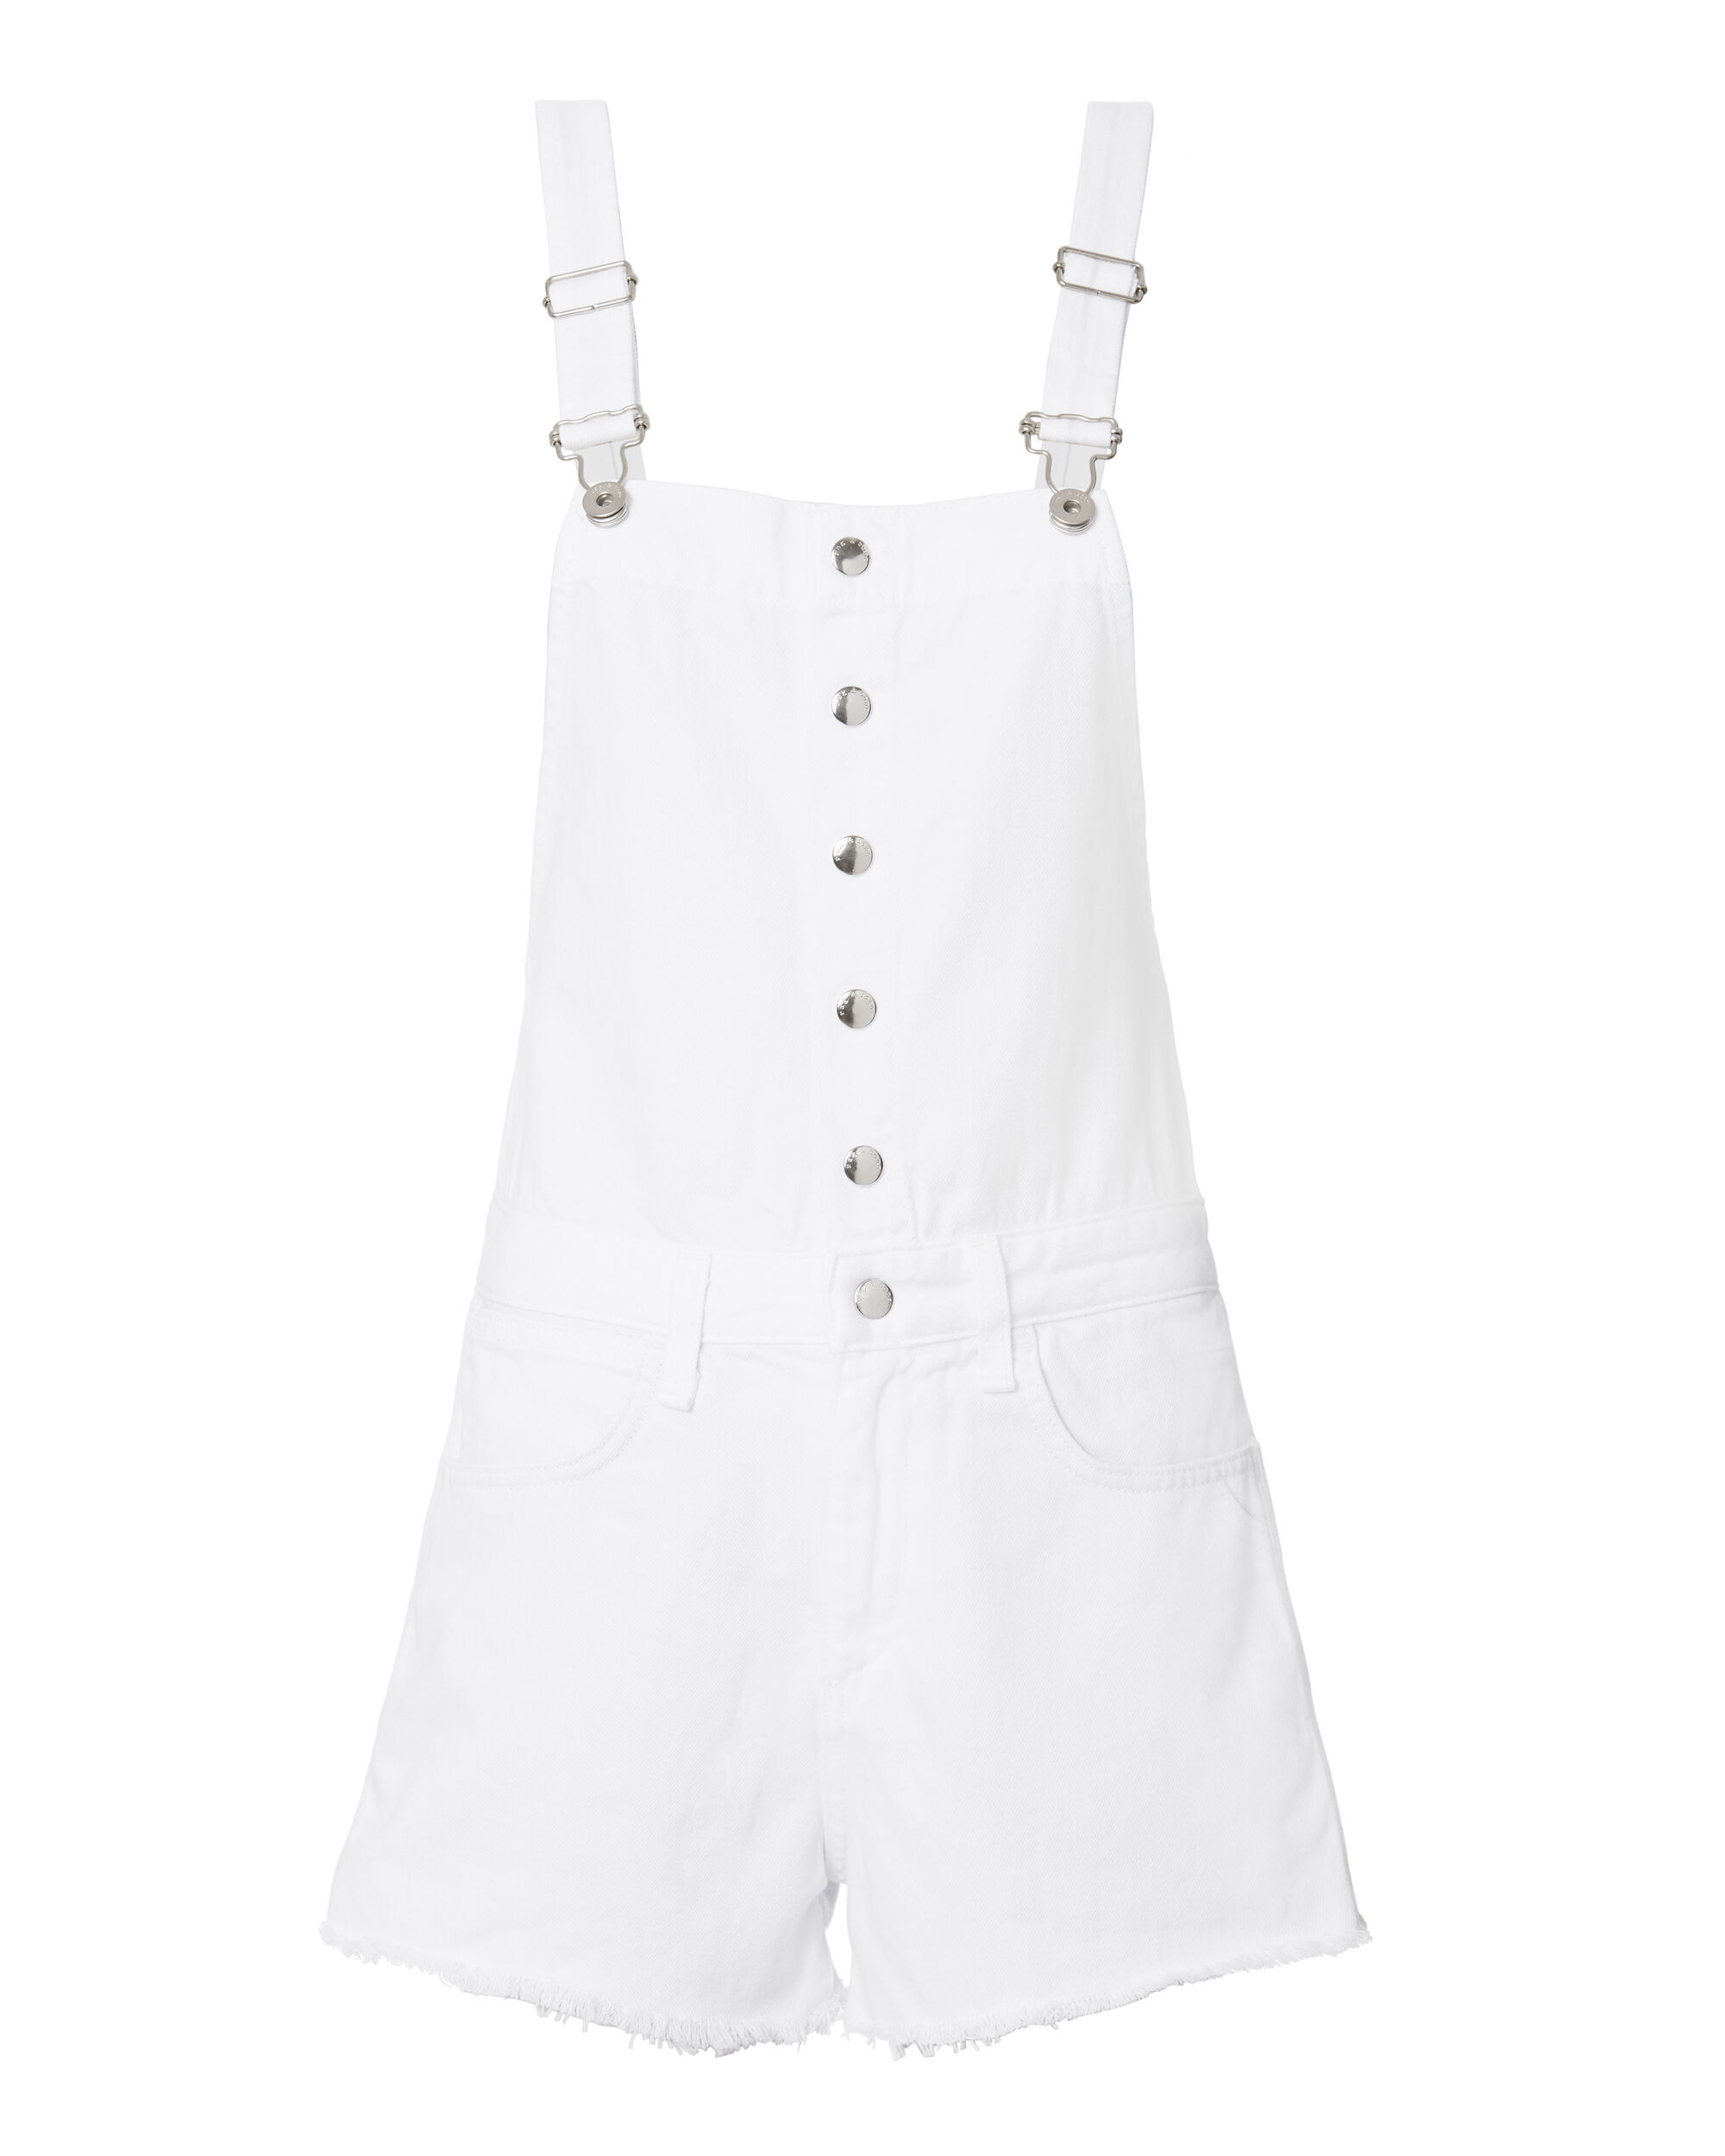 Lou Overall Shorts, WHITE, hi-res